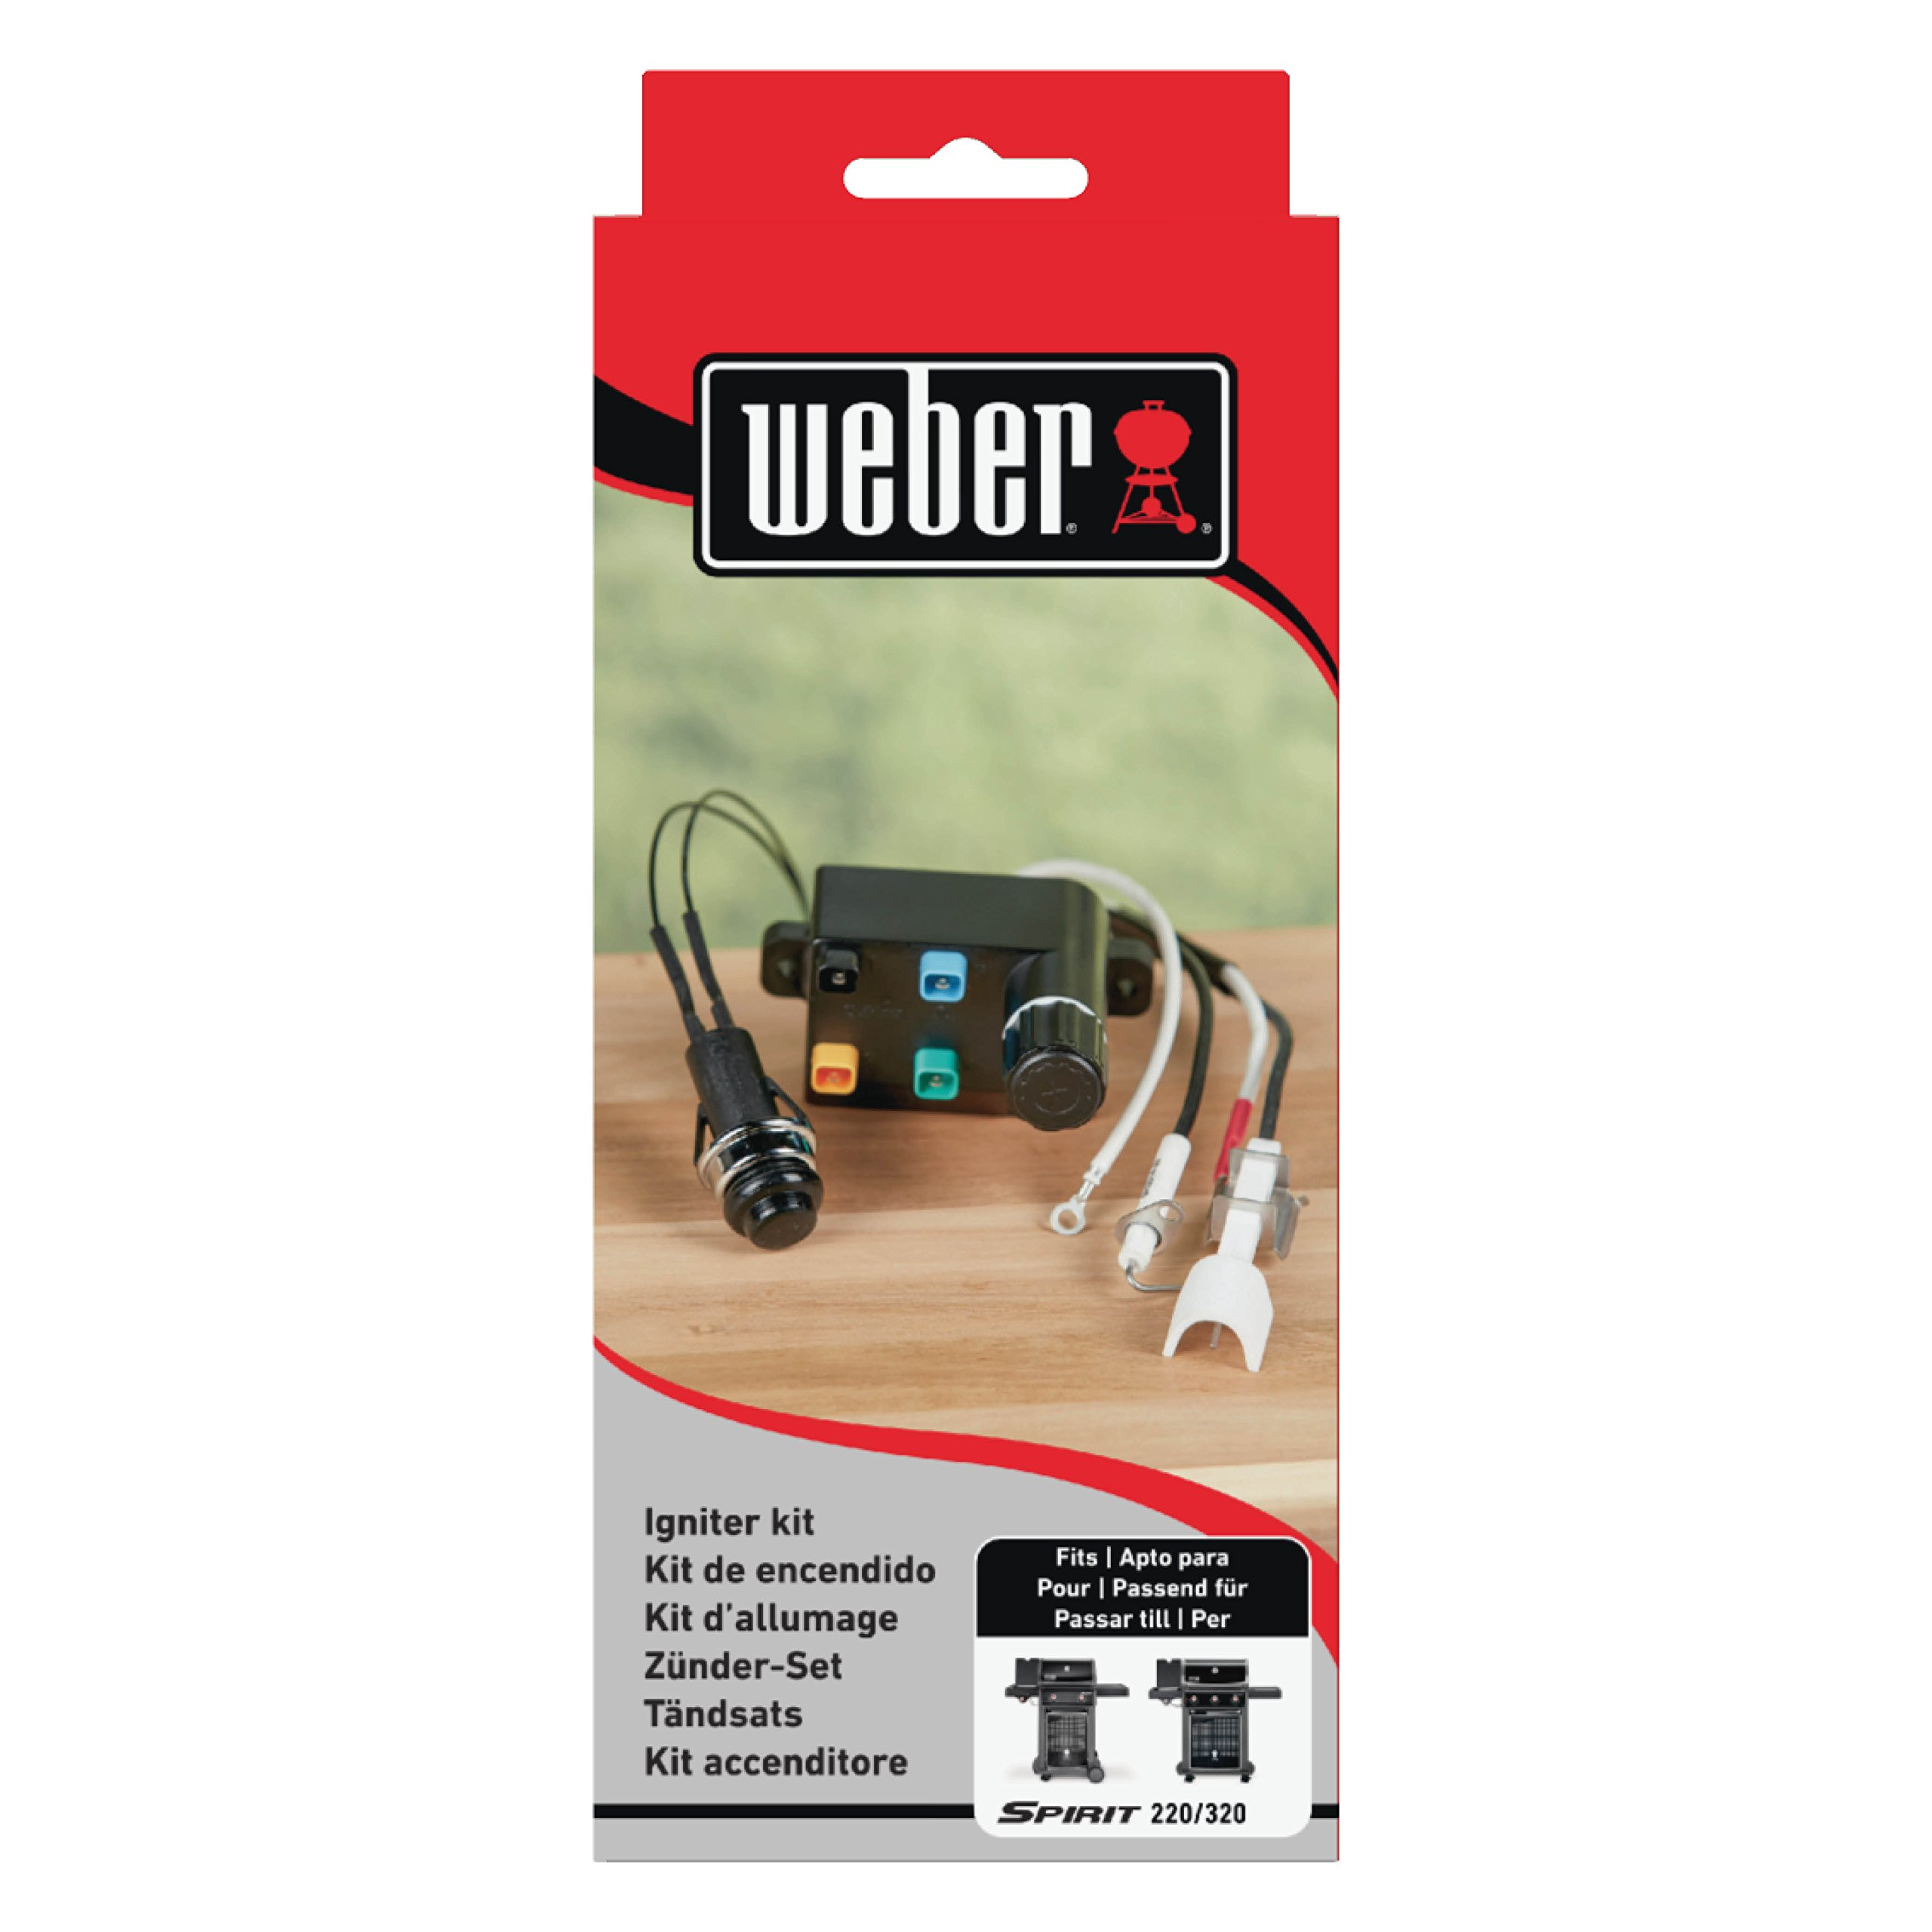 Weber 7643 Igniter Kit for Spirit 300 Series Gas Grills